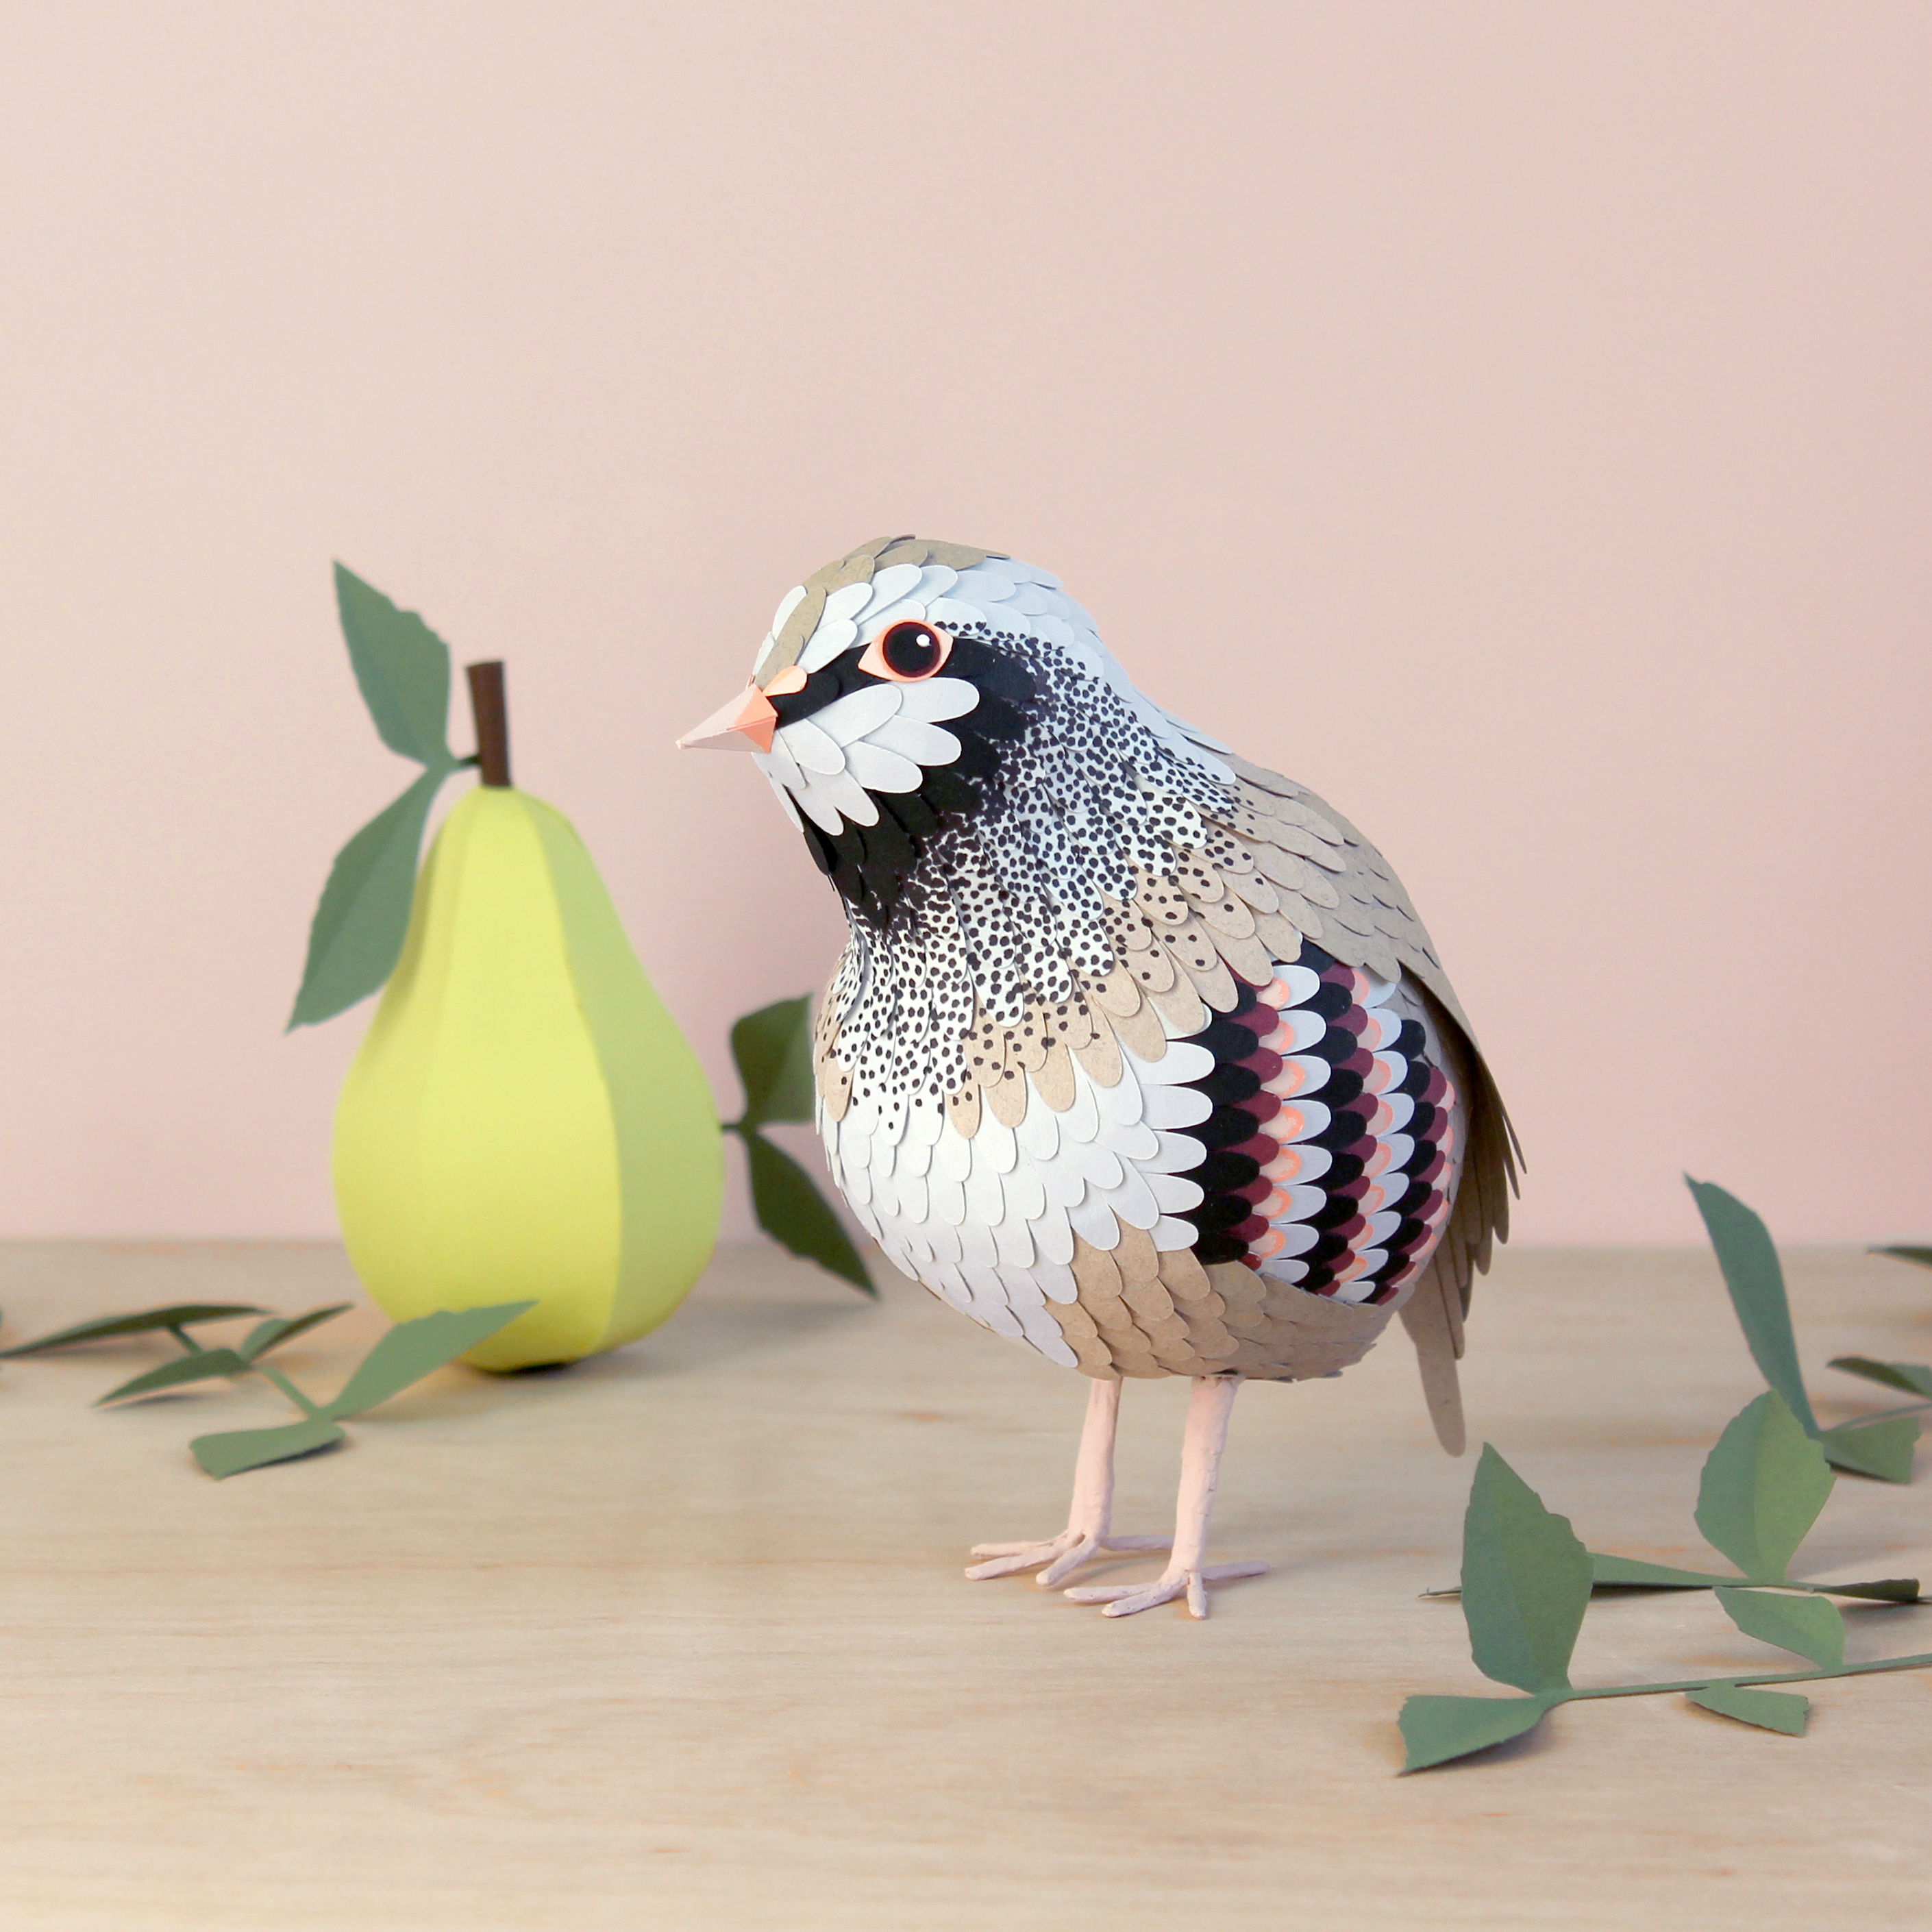 3D Paper Engineered Partridge in a Pear Tree Bird